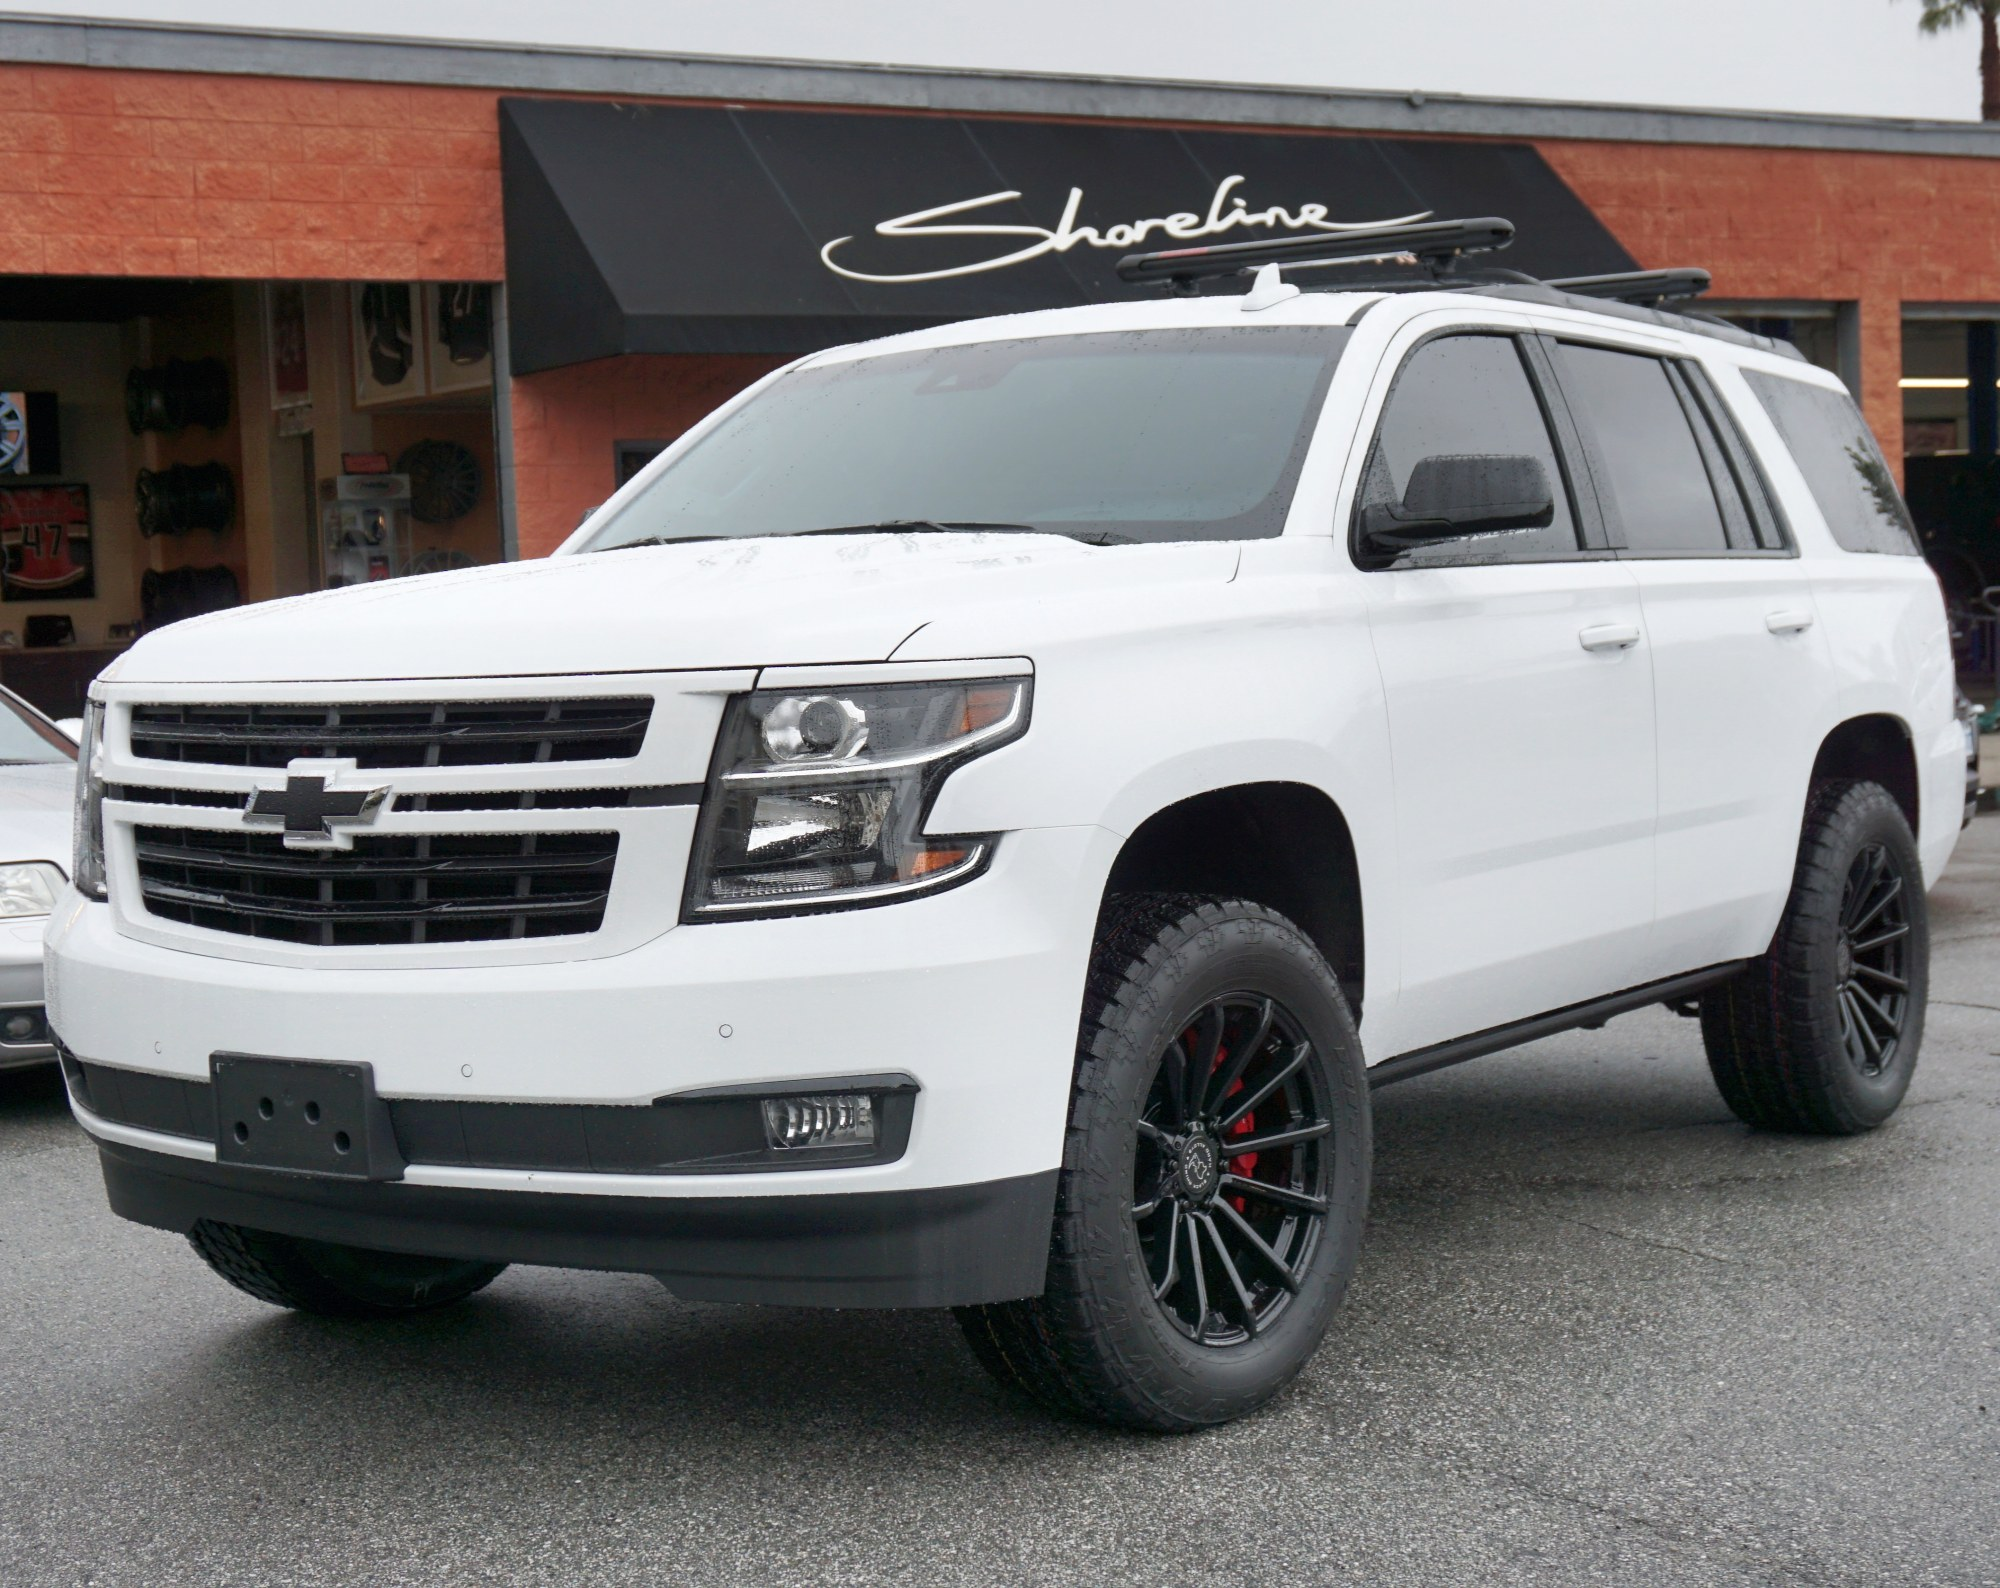 hight resolution of 19 tahoe ltz equipped with brembo big brakes leveling kit 33 nitto terra grapplers wrapped around 20 black rhino wheels a pedalbox performance upgrade